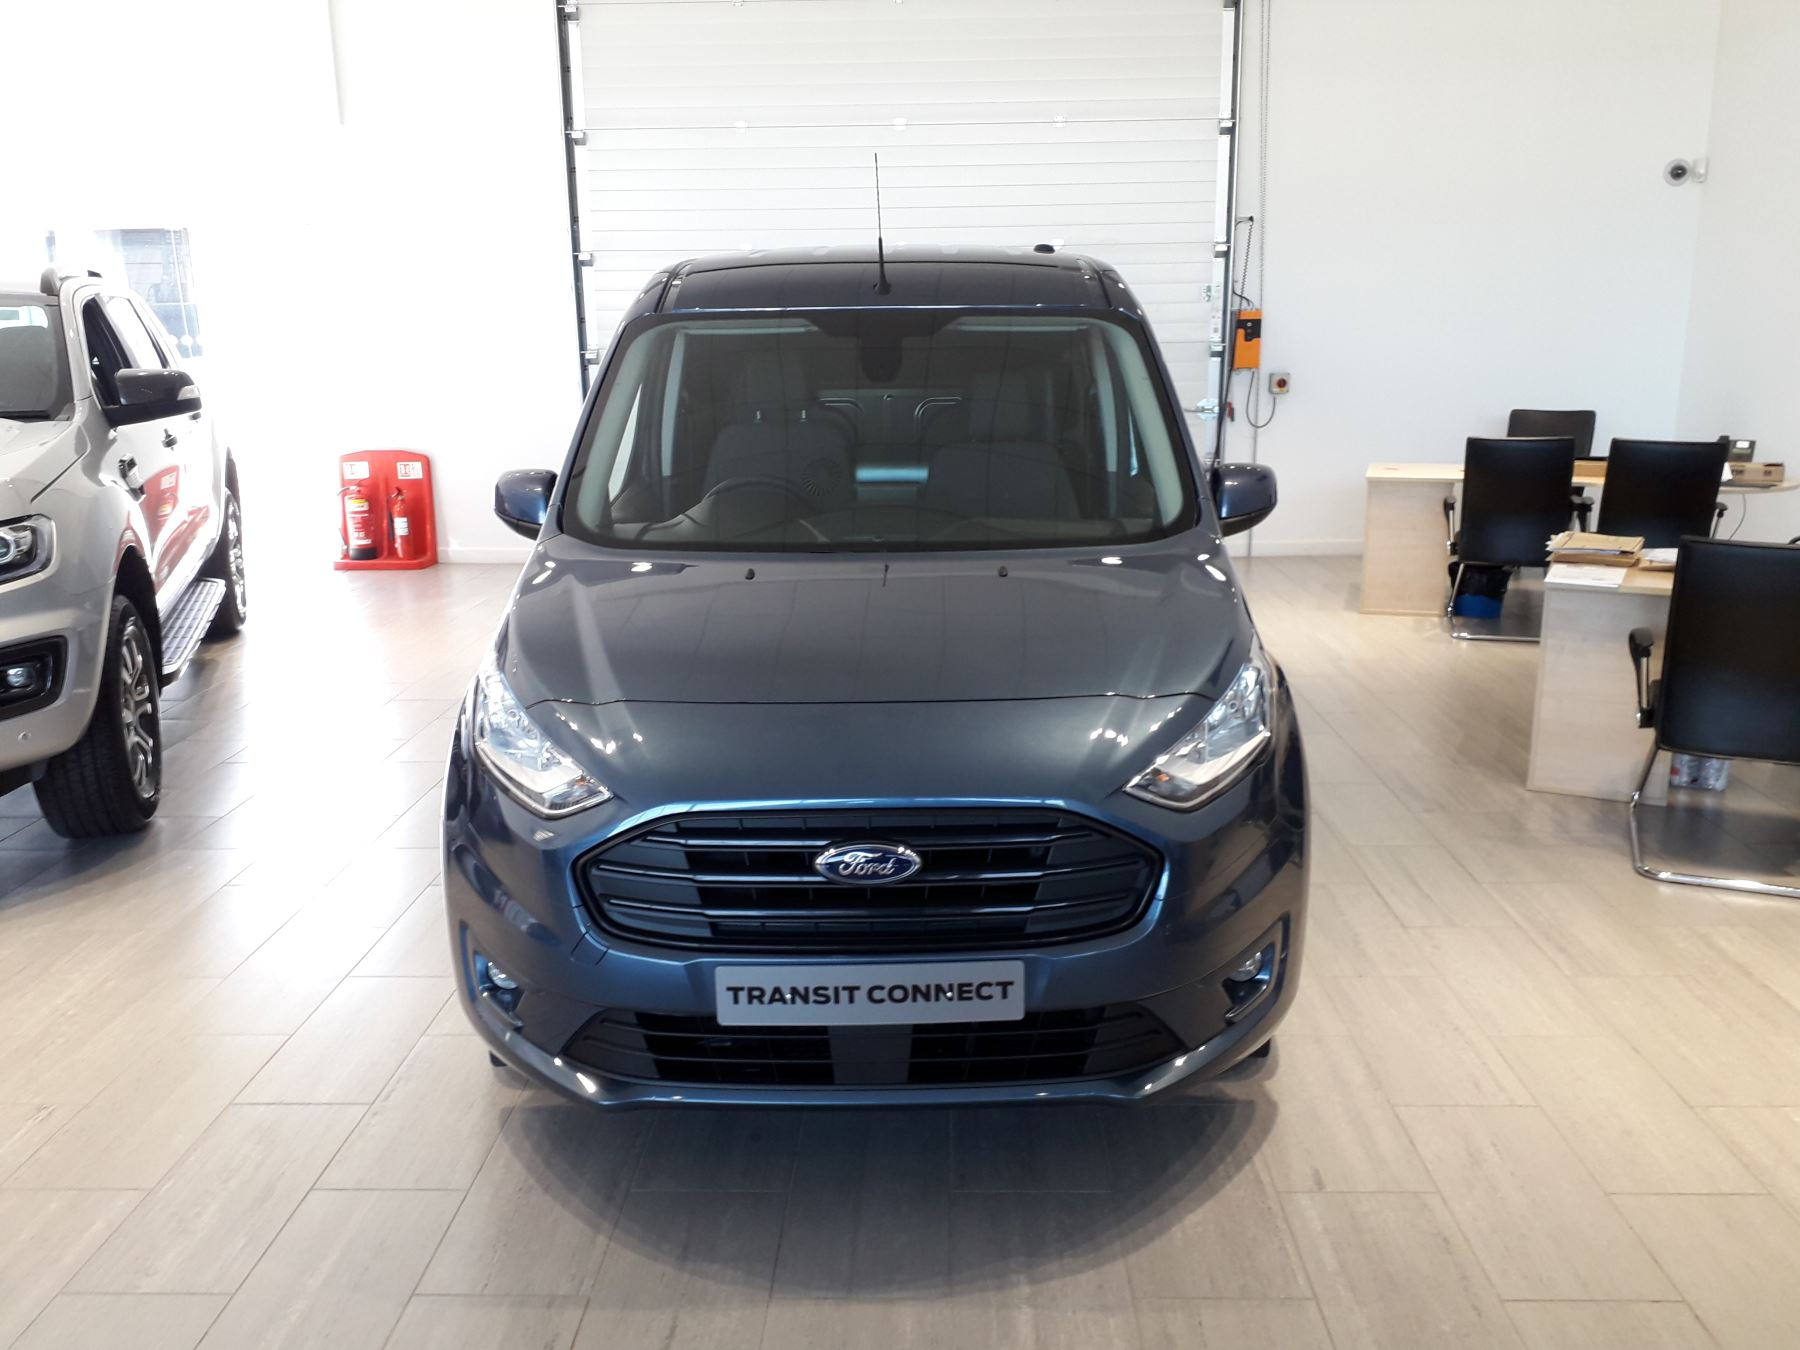 Ford Transit Connect 240 L2 Limited Euro 6 image 2